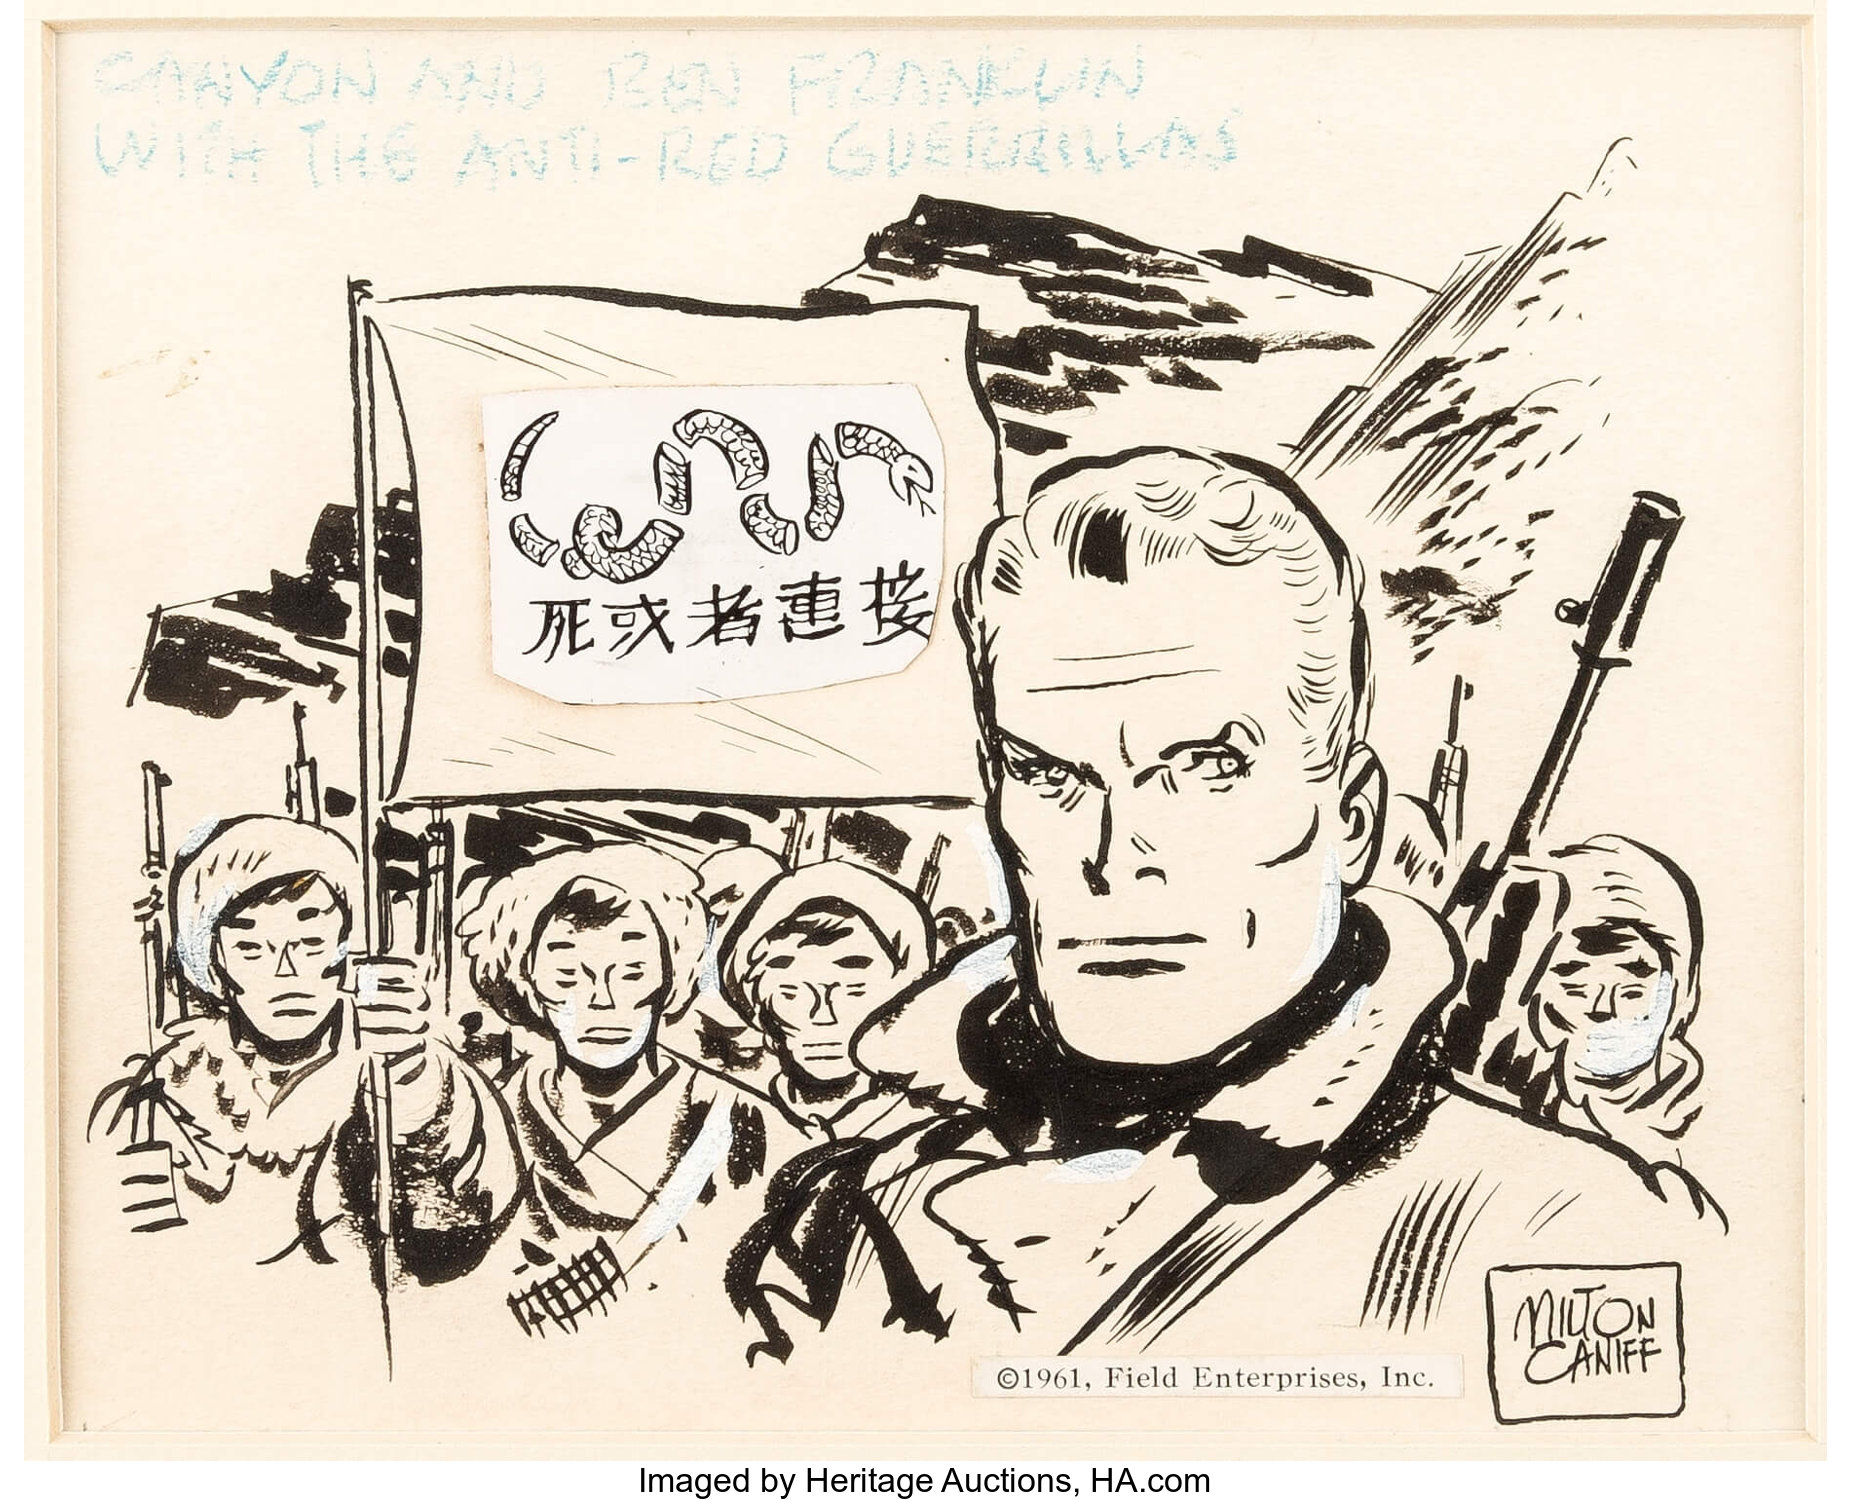 Milton caniff steve canyon illustration original art field lot 15034 heritage auctions